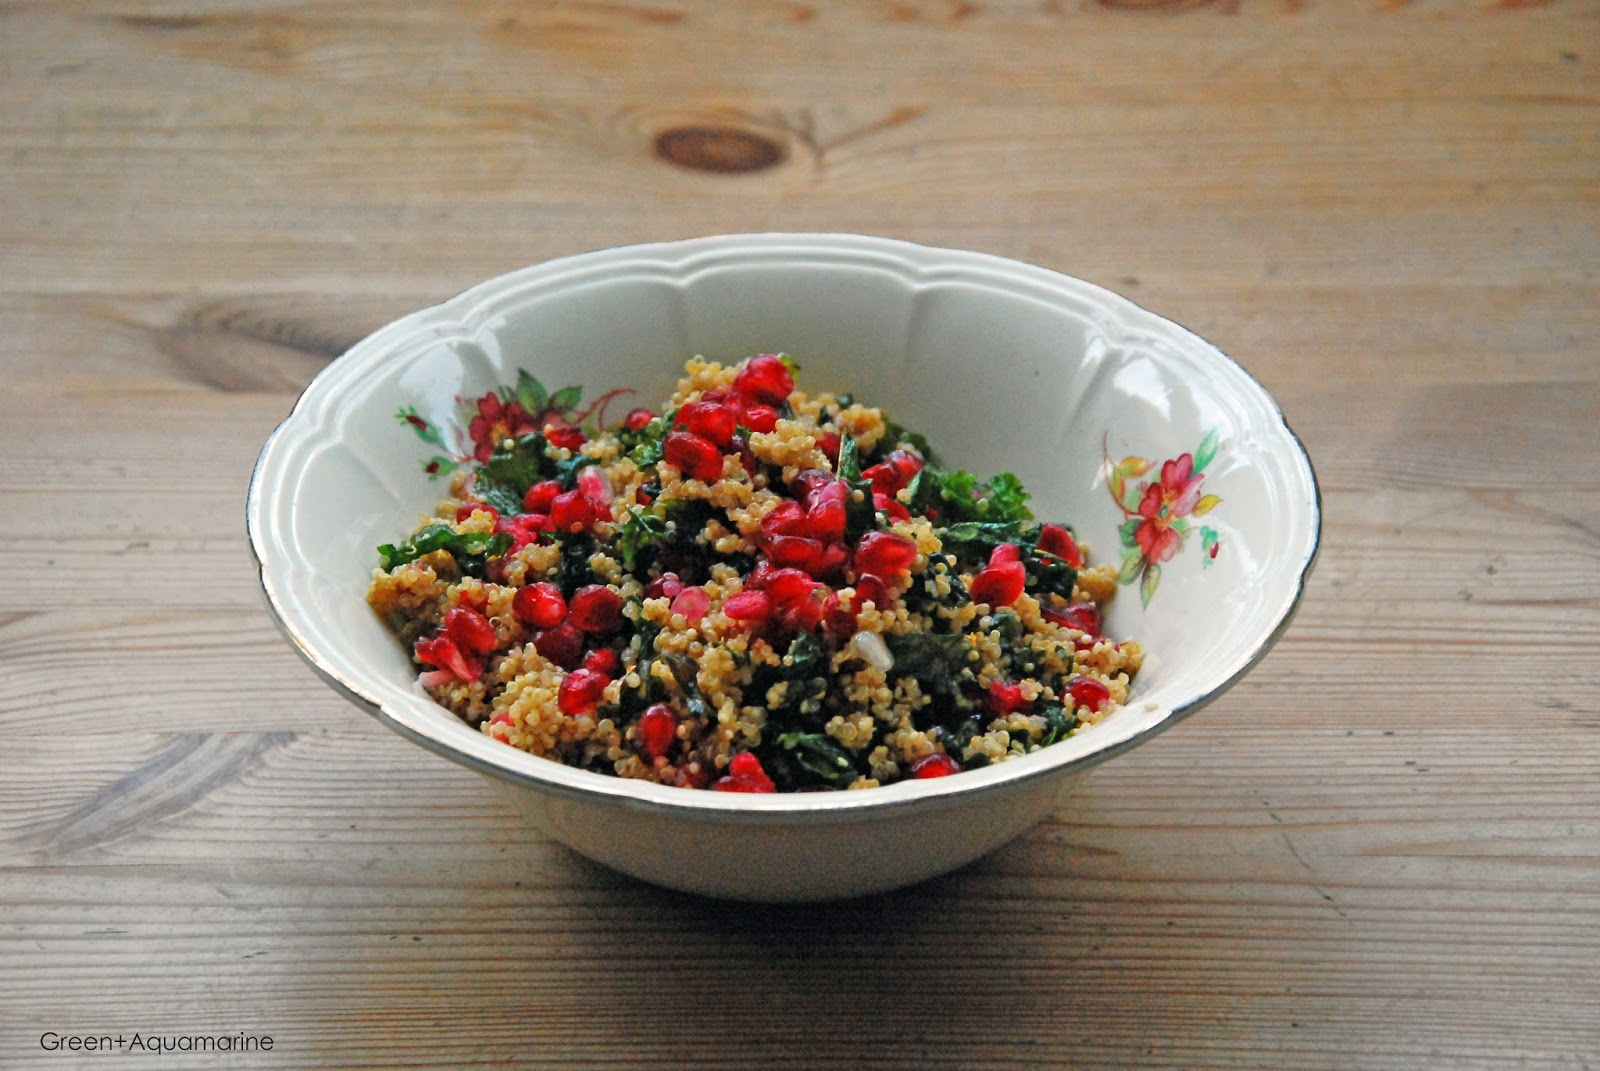 Superfood, quinoa, kale, pomegranate, salad